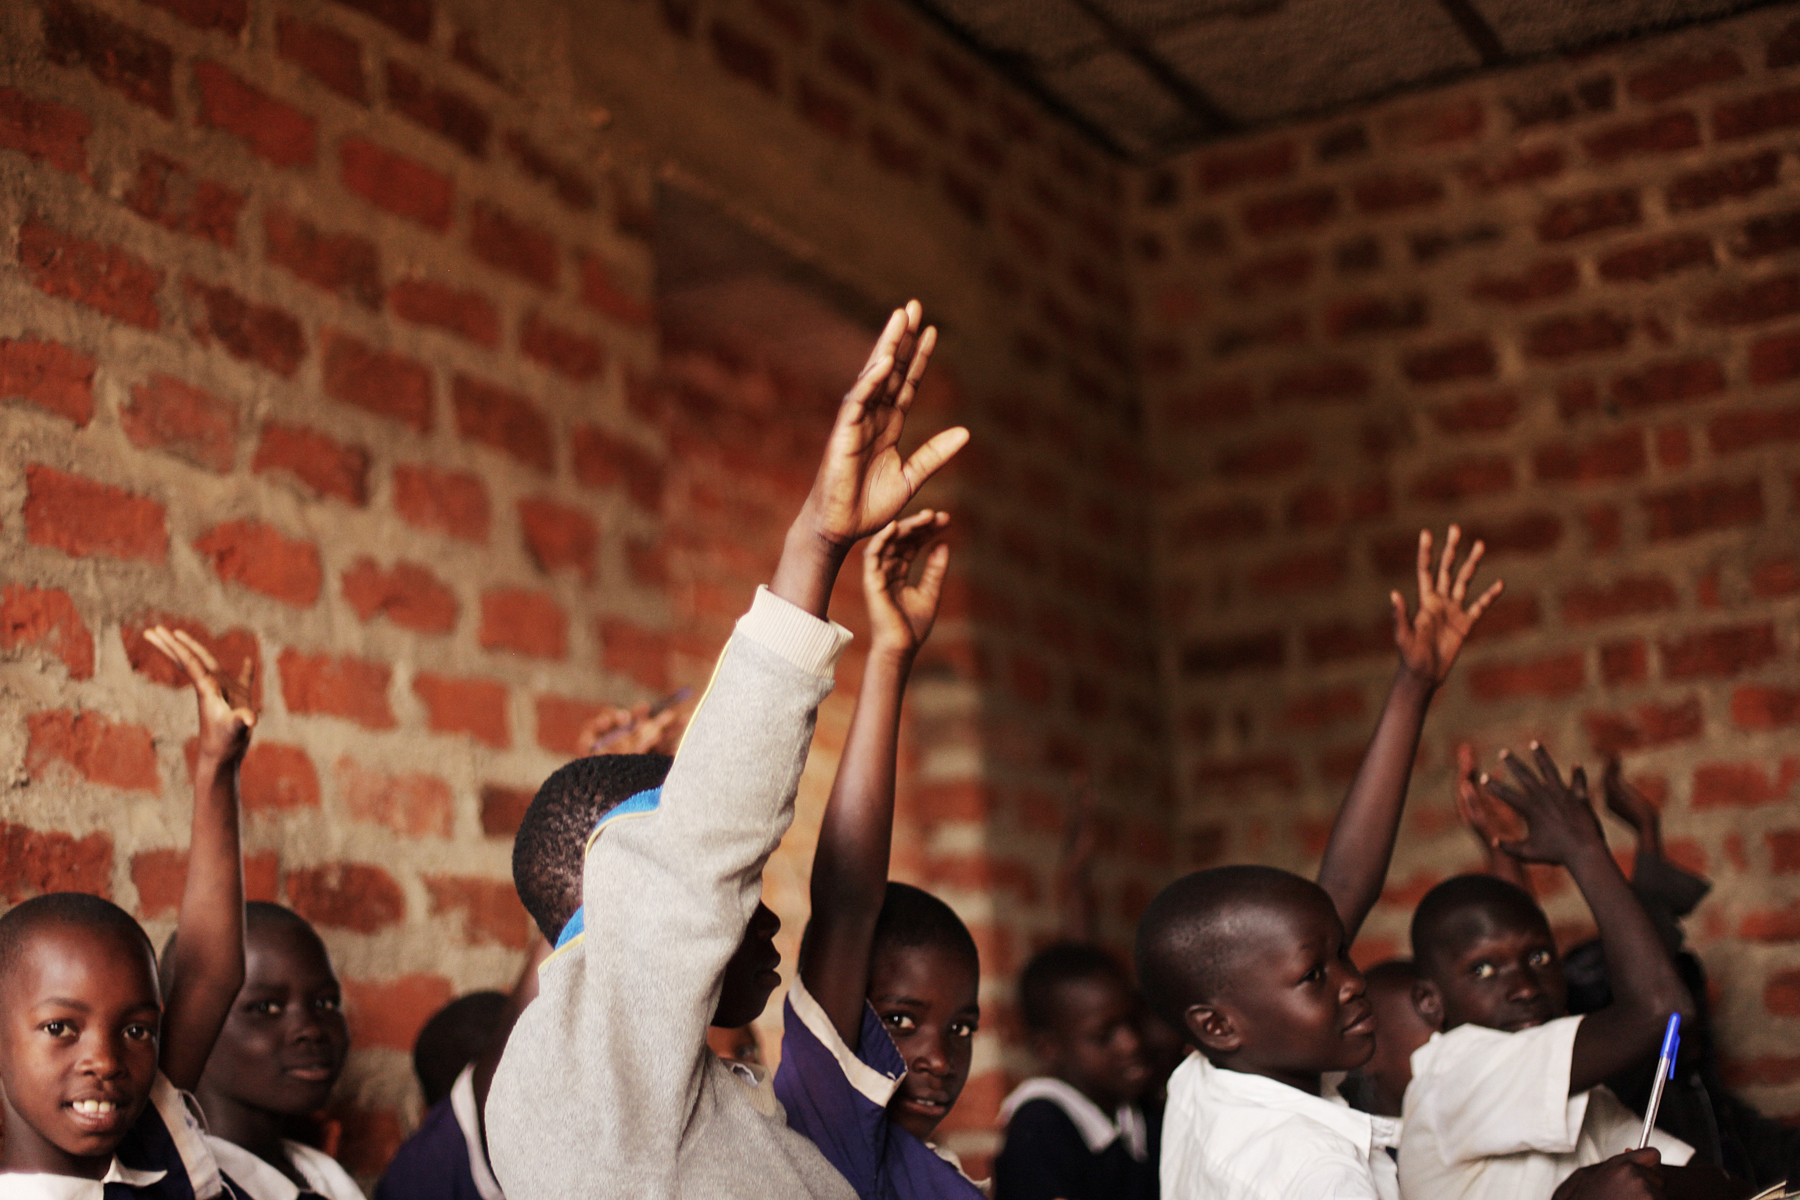 nonprofit-provides-free-education-uganda